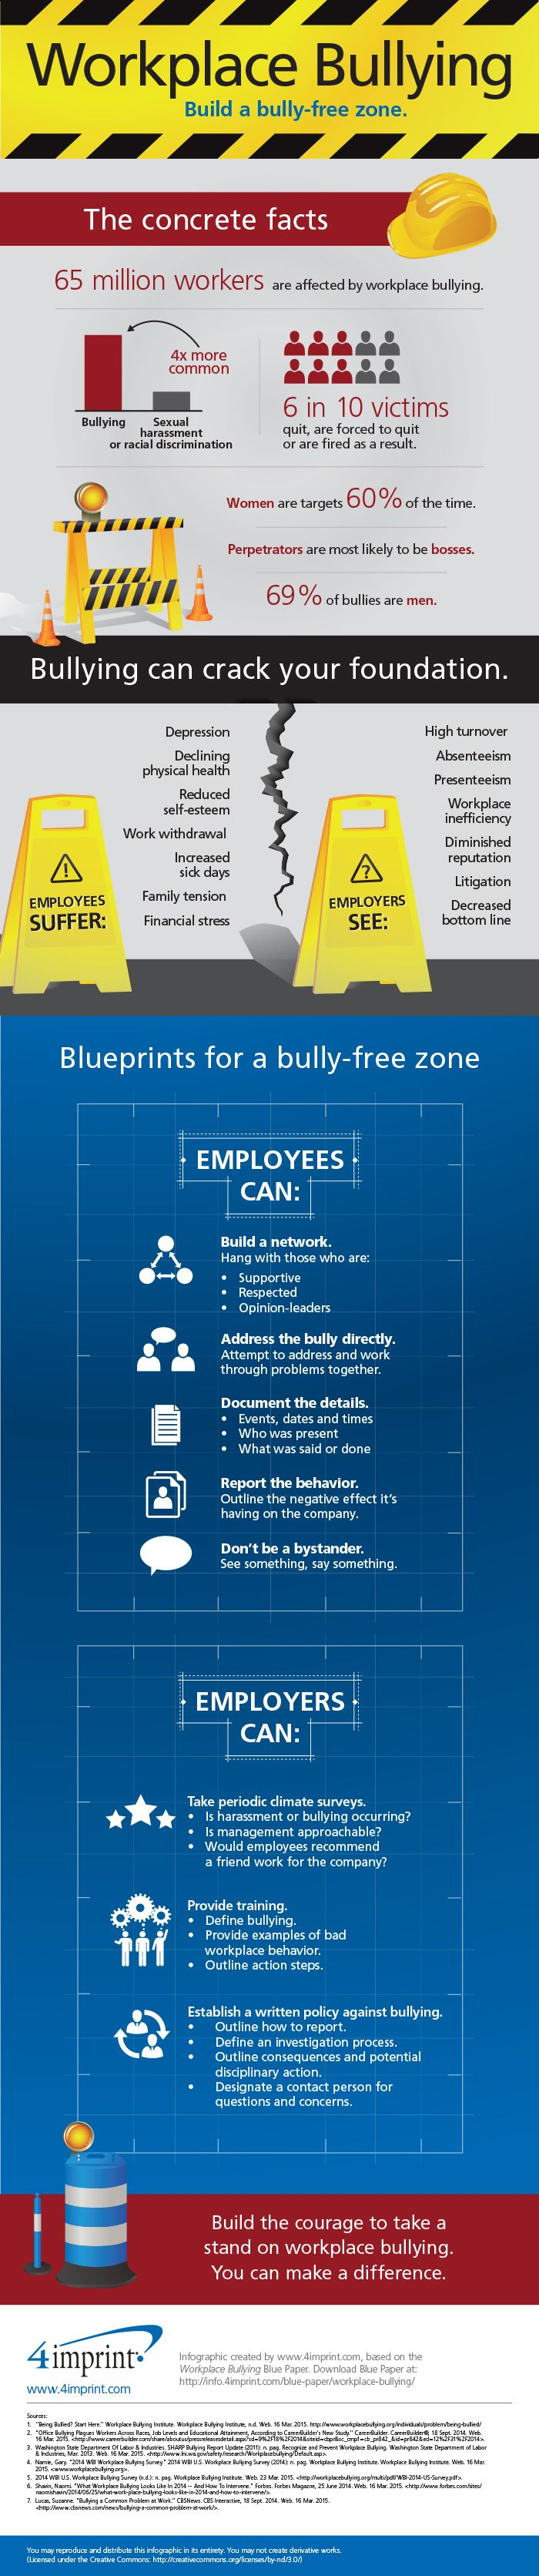 whmis workplace label template - workplace bullying l the high cost of bad behavior